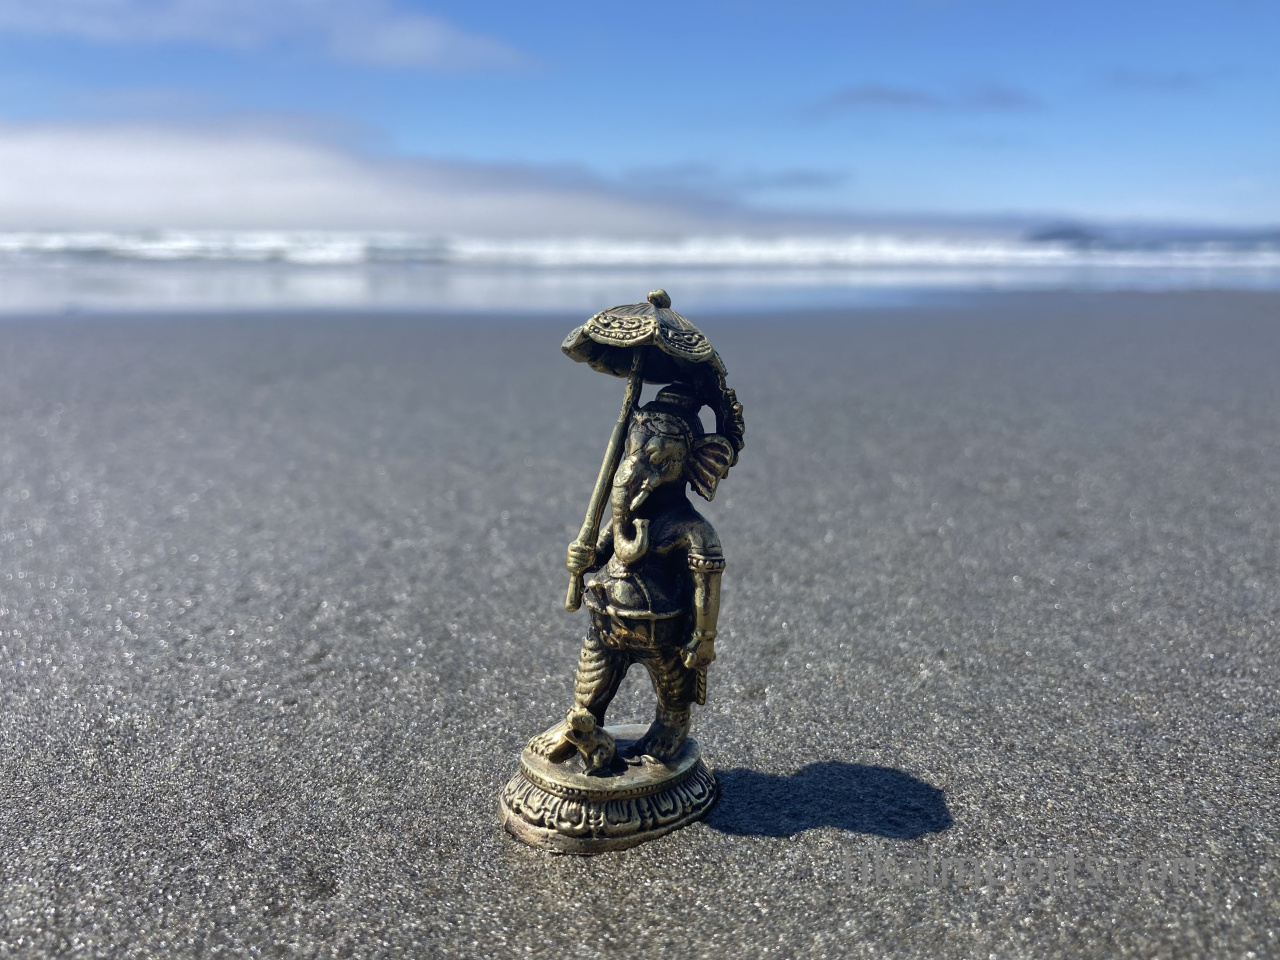 brass statue of Ganesh with umbrella on the beach